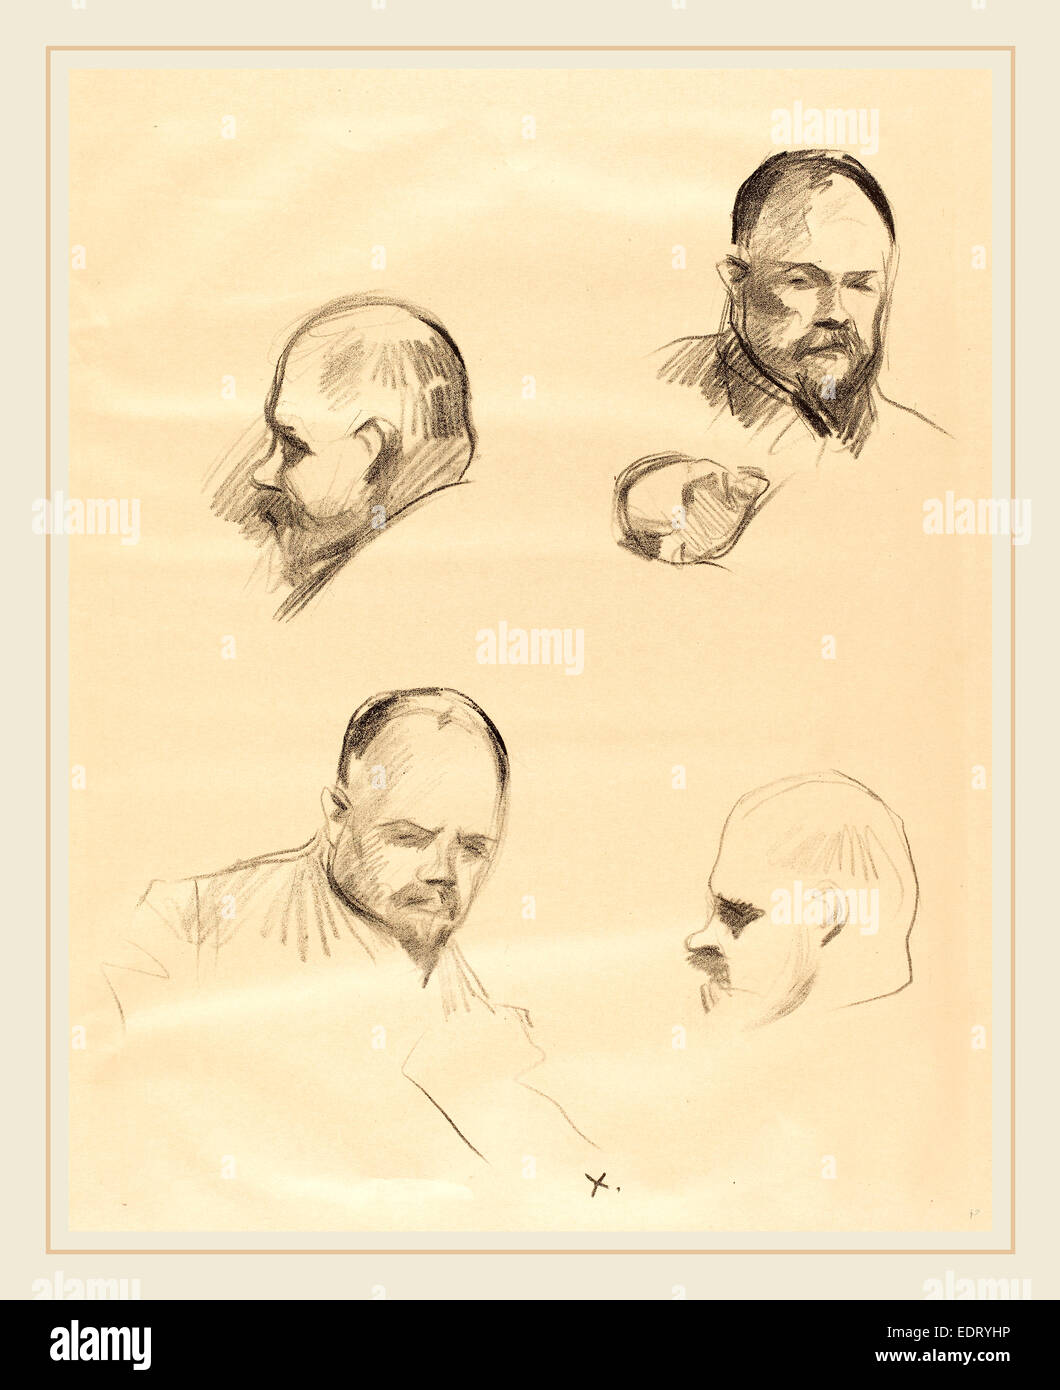 Jean-Louis Forain, Four Sketches of Ambroise Vollard, French, 1852-1931, c. 1910, lithograph - Stock Image